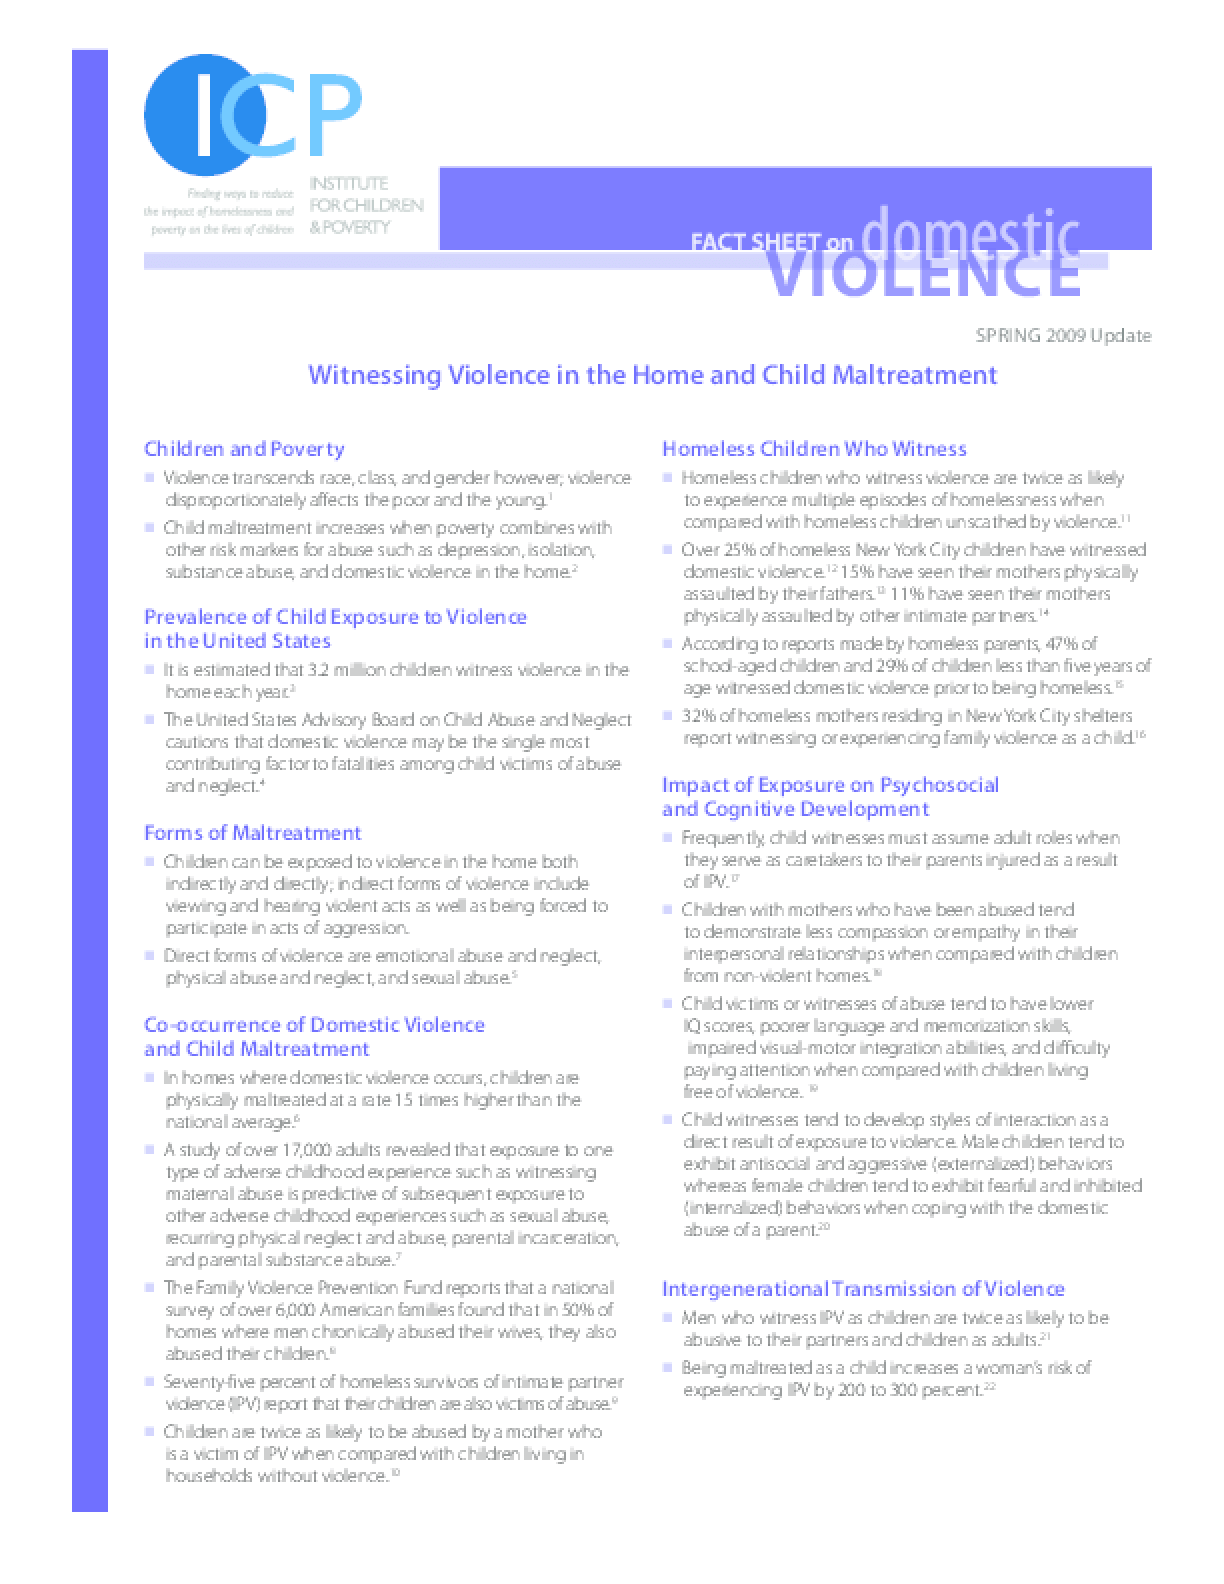 Domestic Violence - Witnessing Violence in the Home and Child Maltreatment